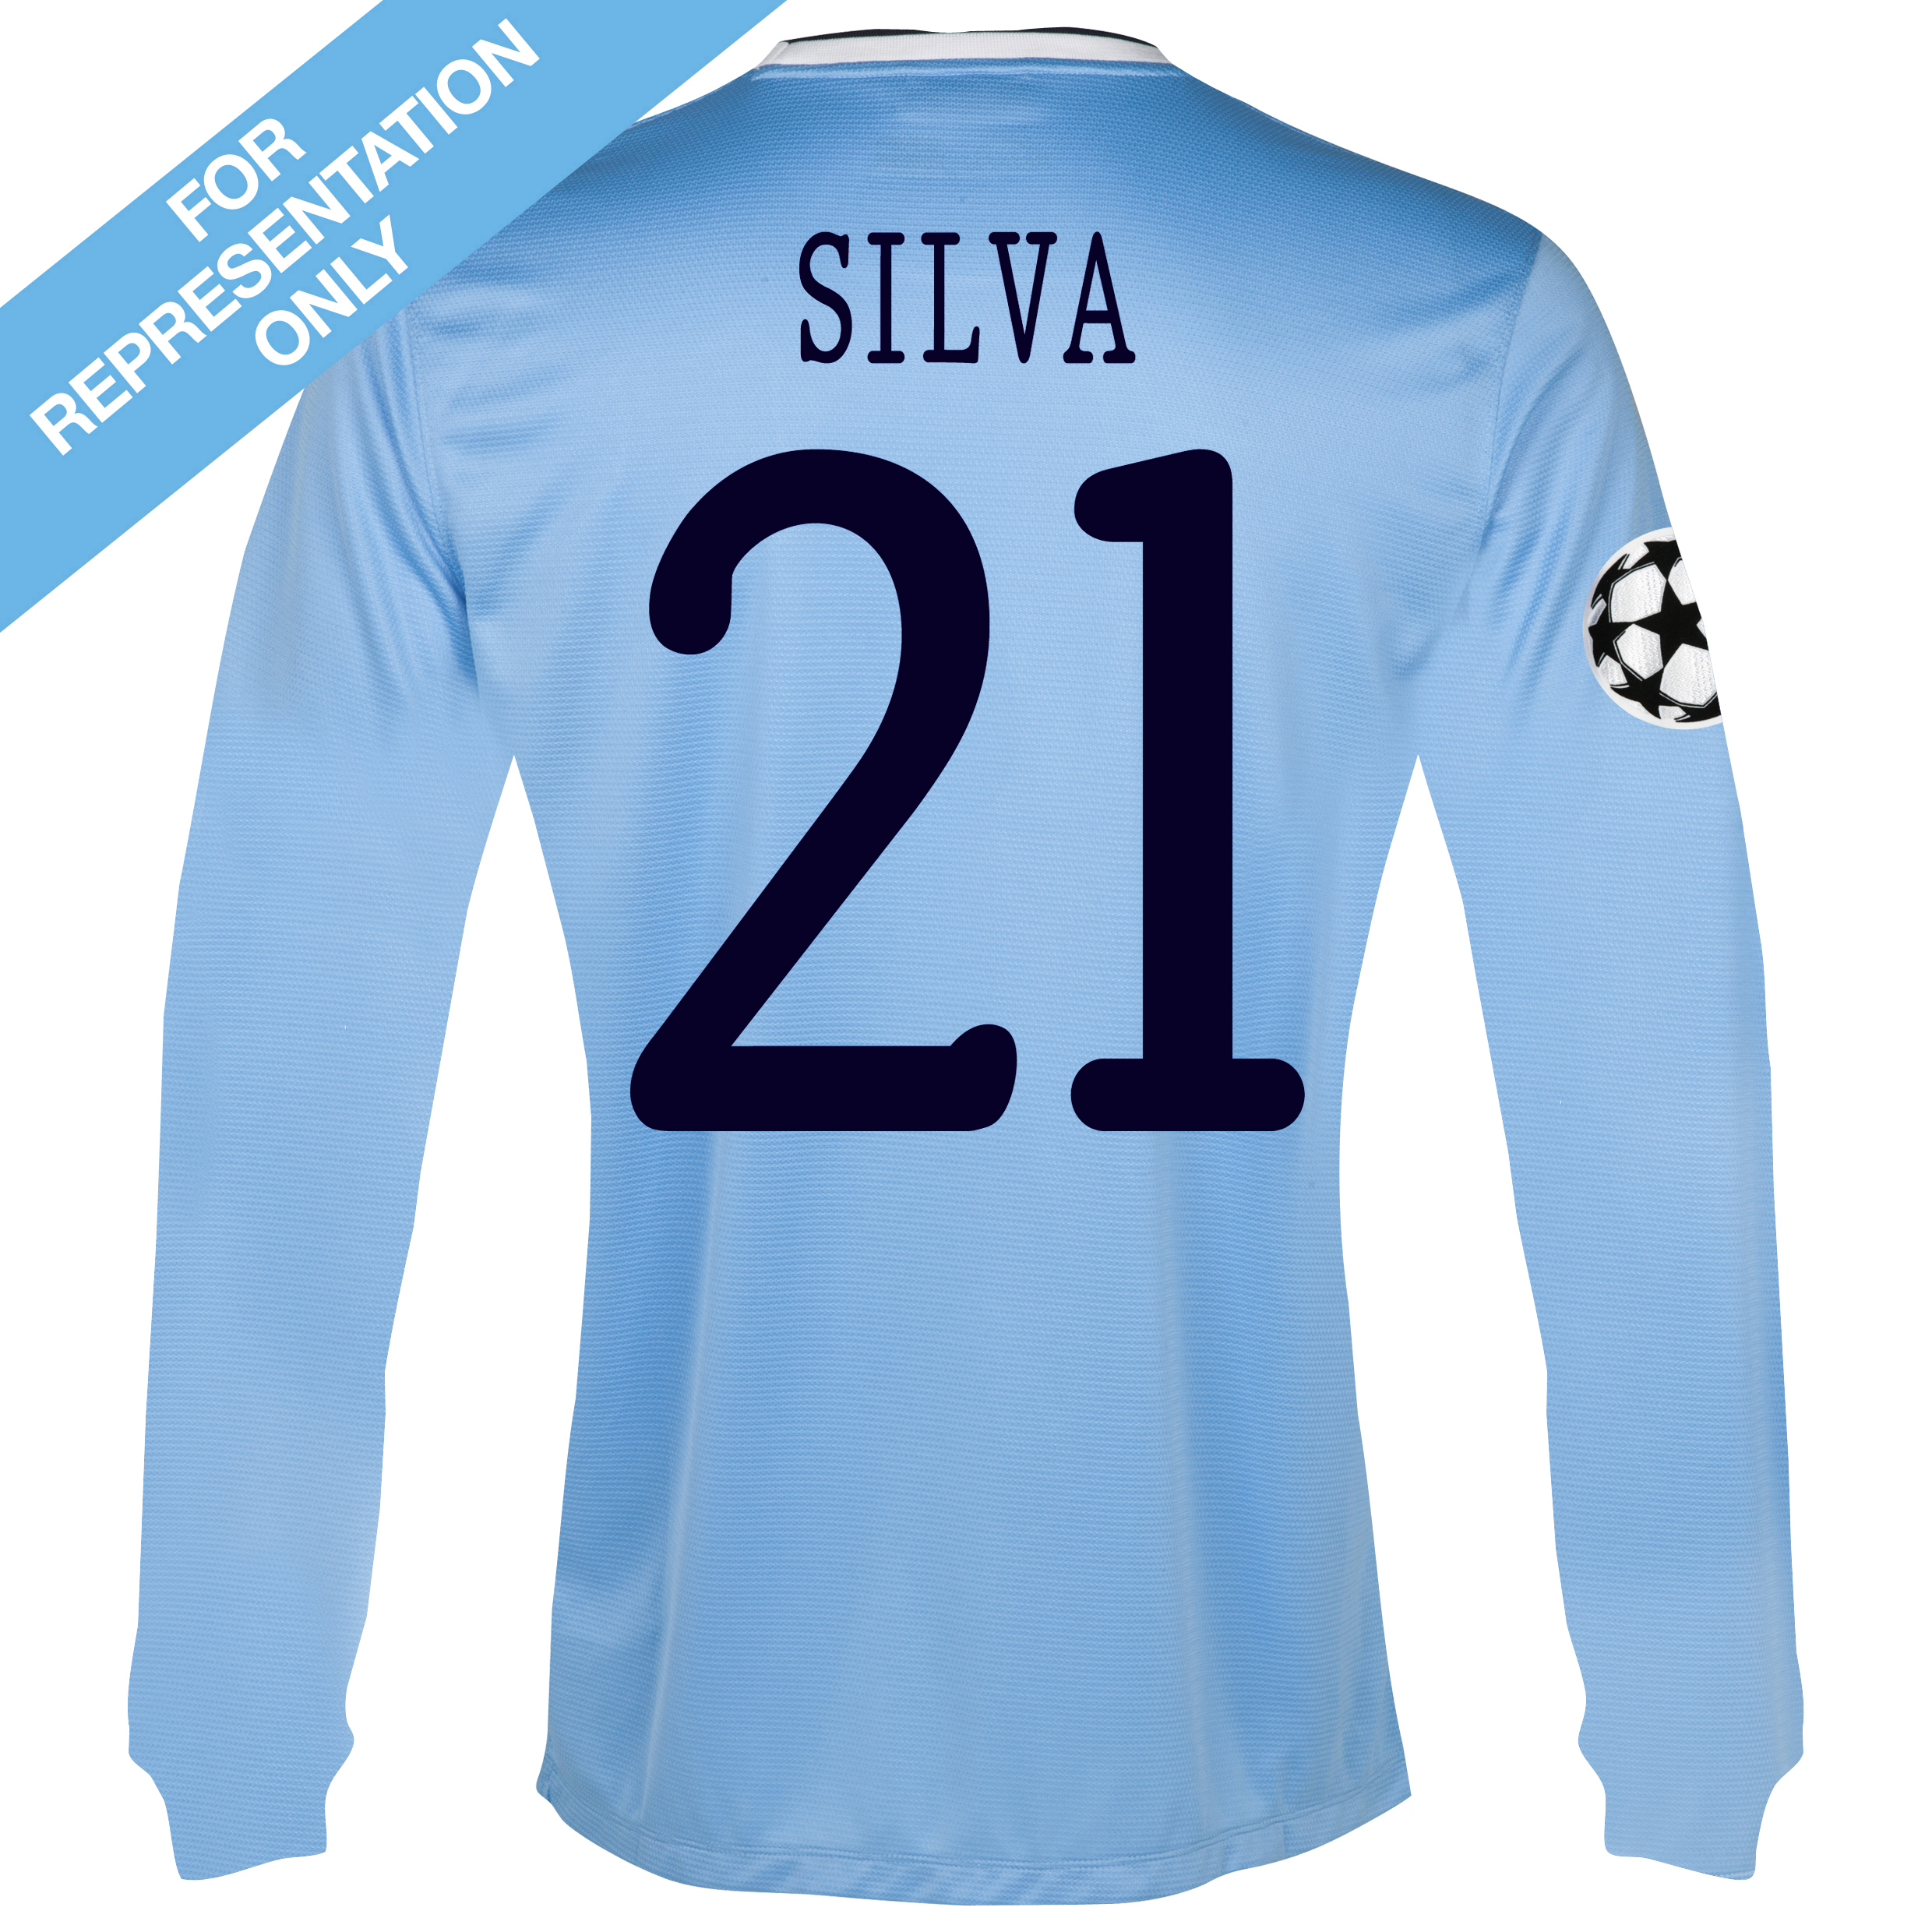 Manchester City UEFA Champions League Home Shirt 2013/14 - Long Sleeved with Silva 21 printing